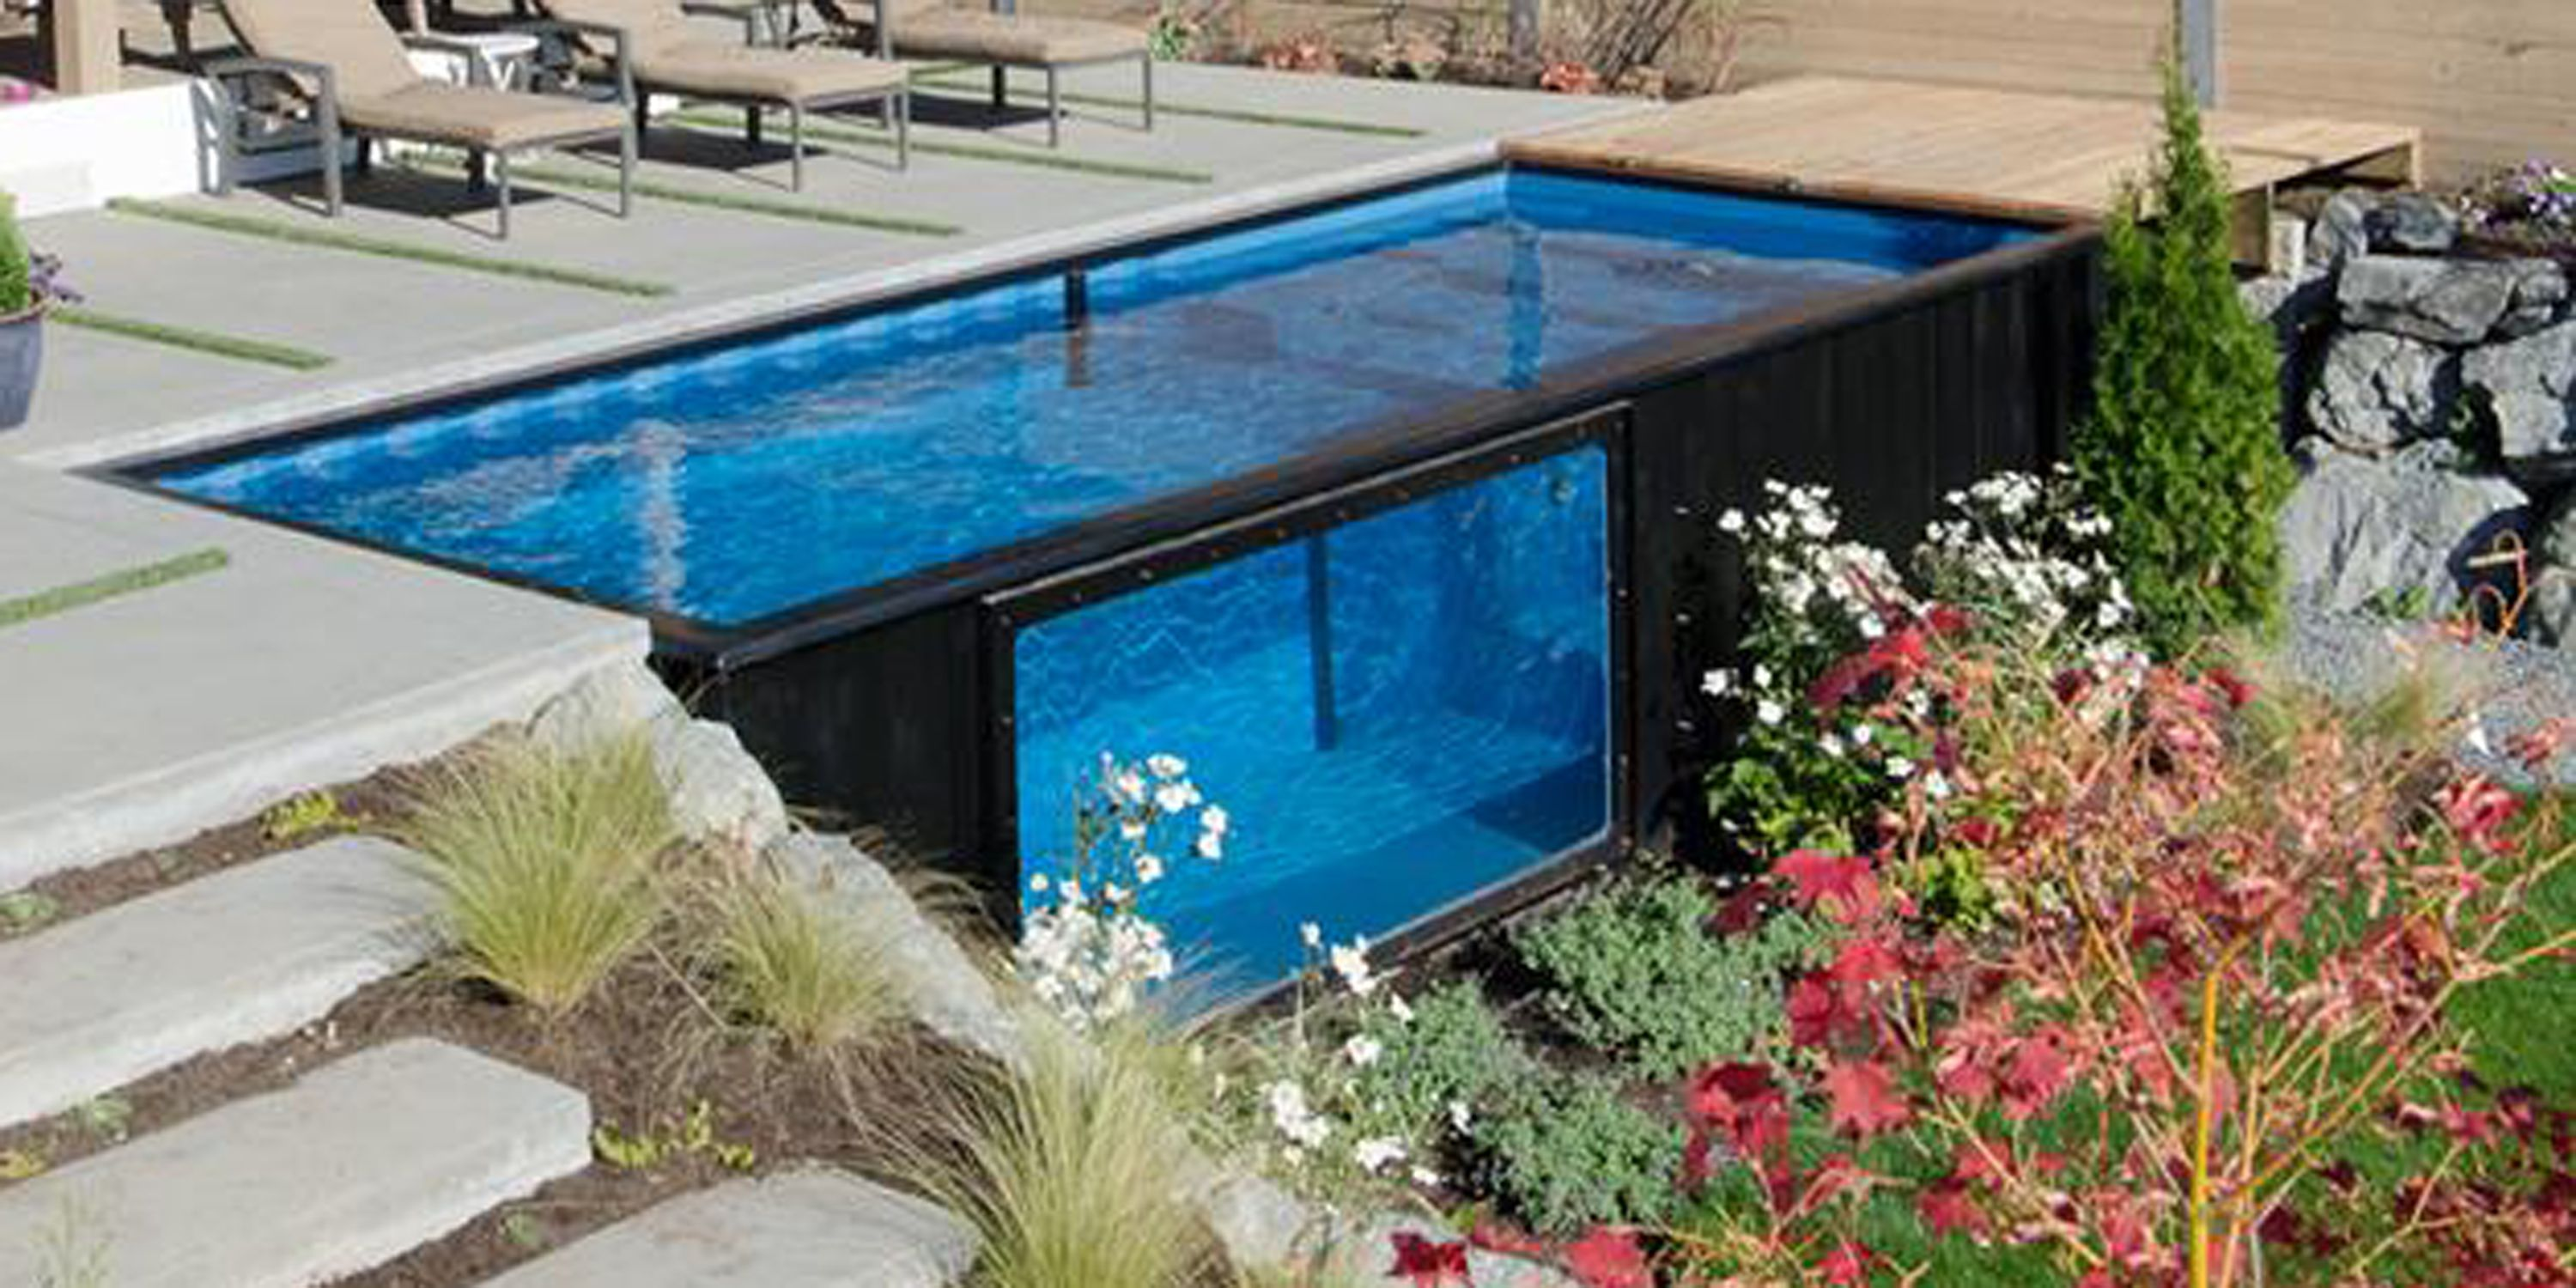 This Incredible Heated Pool Was Made from a Shipping Container